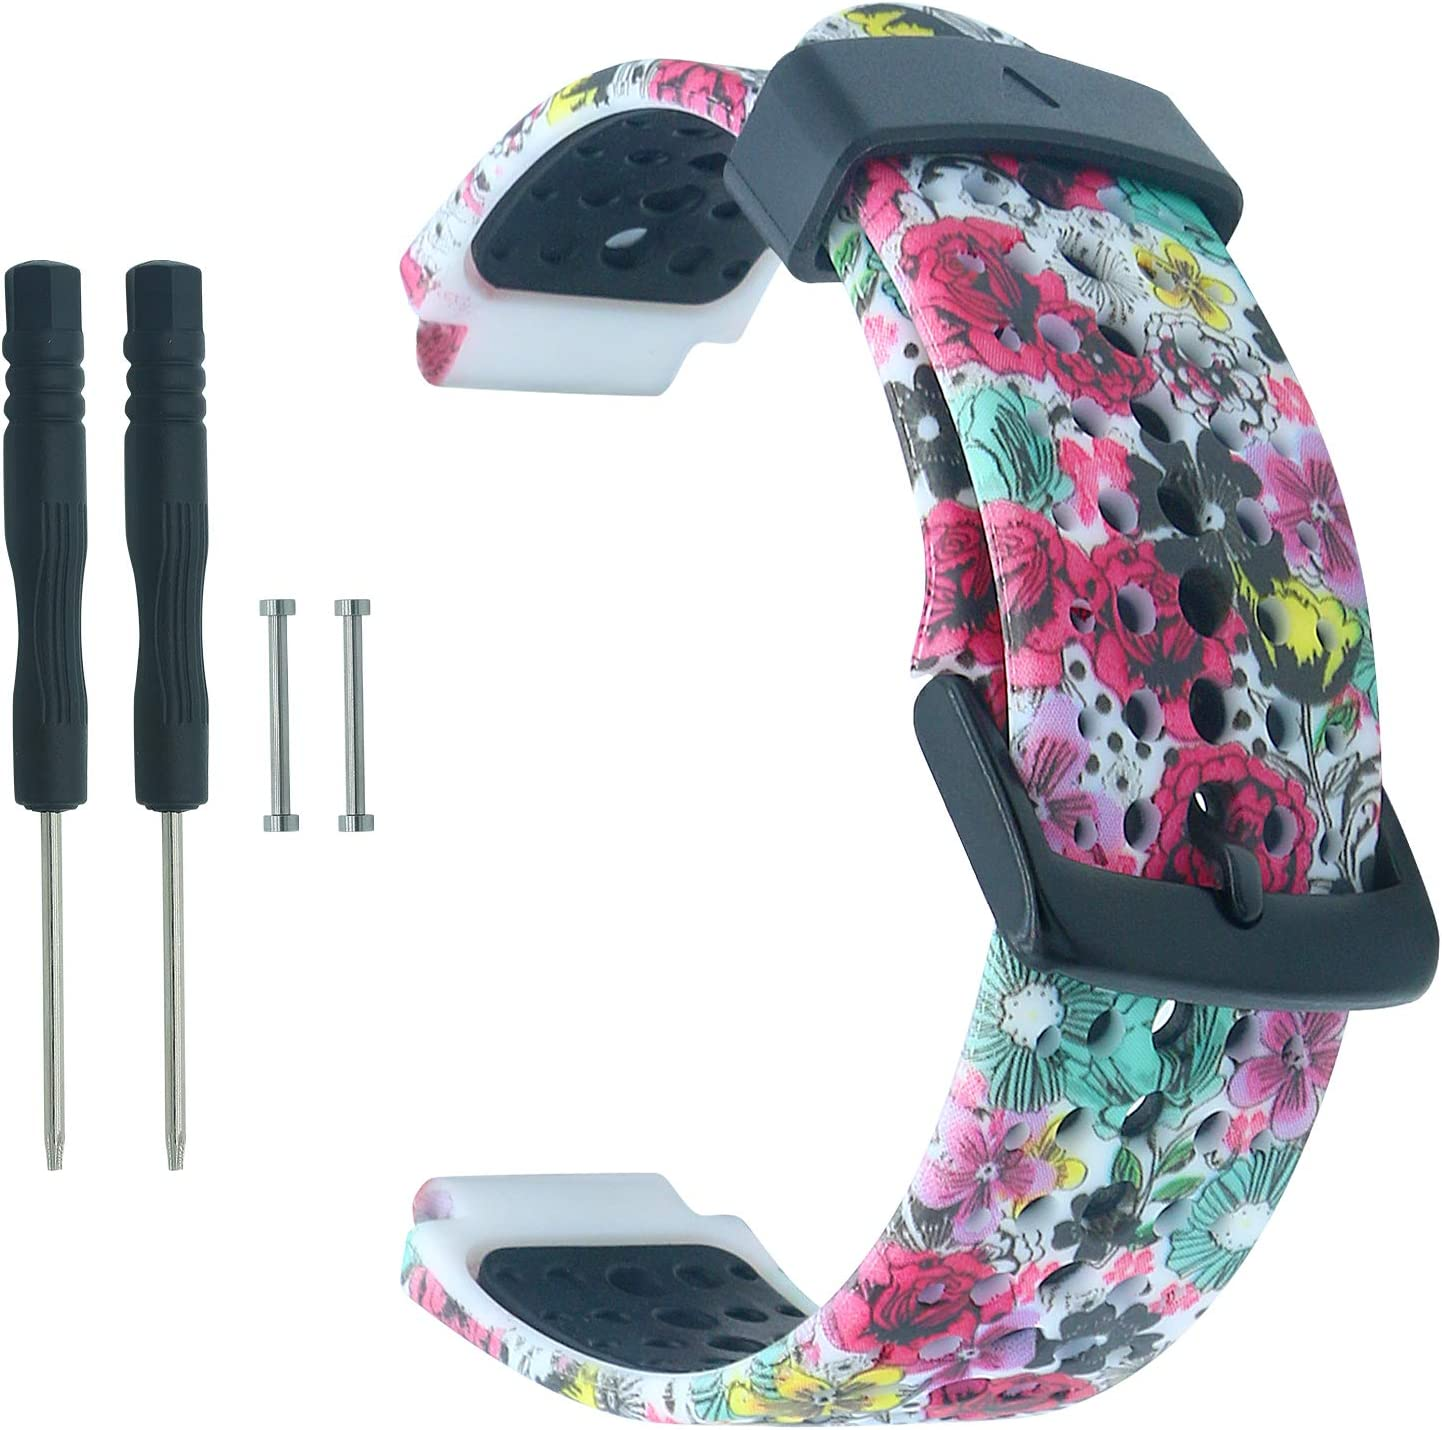 COLAPOO Silicone Strap Ranking TOP17 Soft Max 71% OFF Wristband With Garmin Compatible For